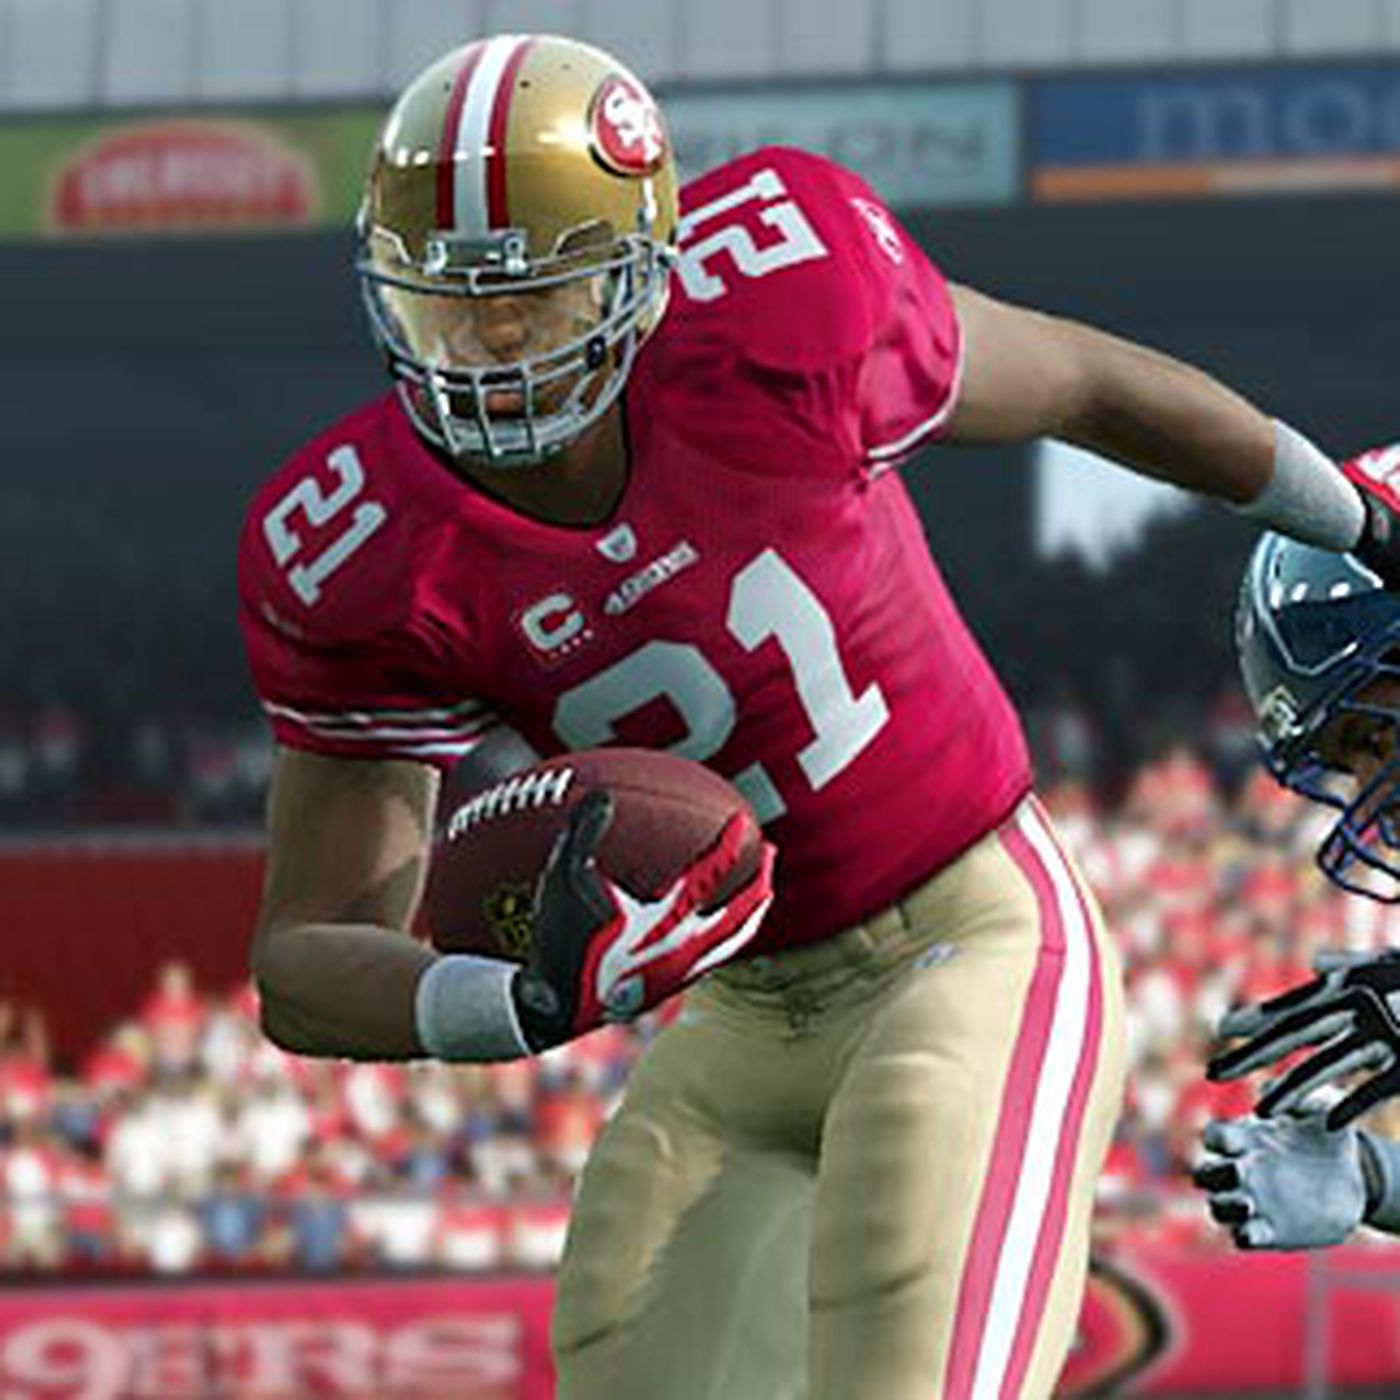 Madden 19 ratings: Breaking down 49ers players with the best